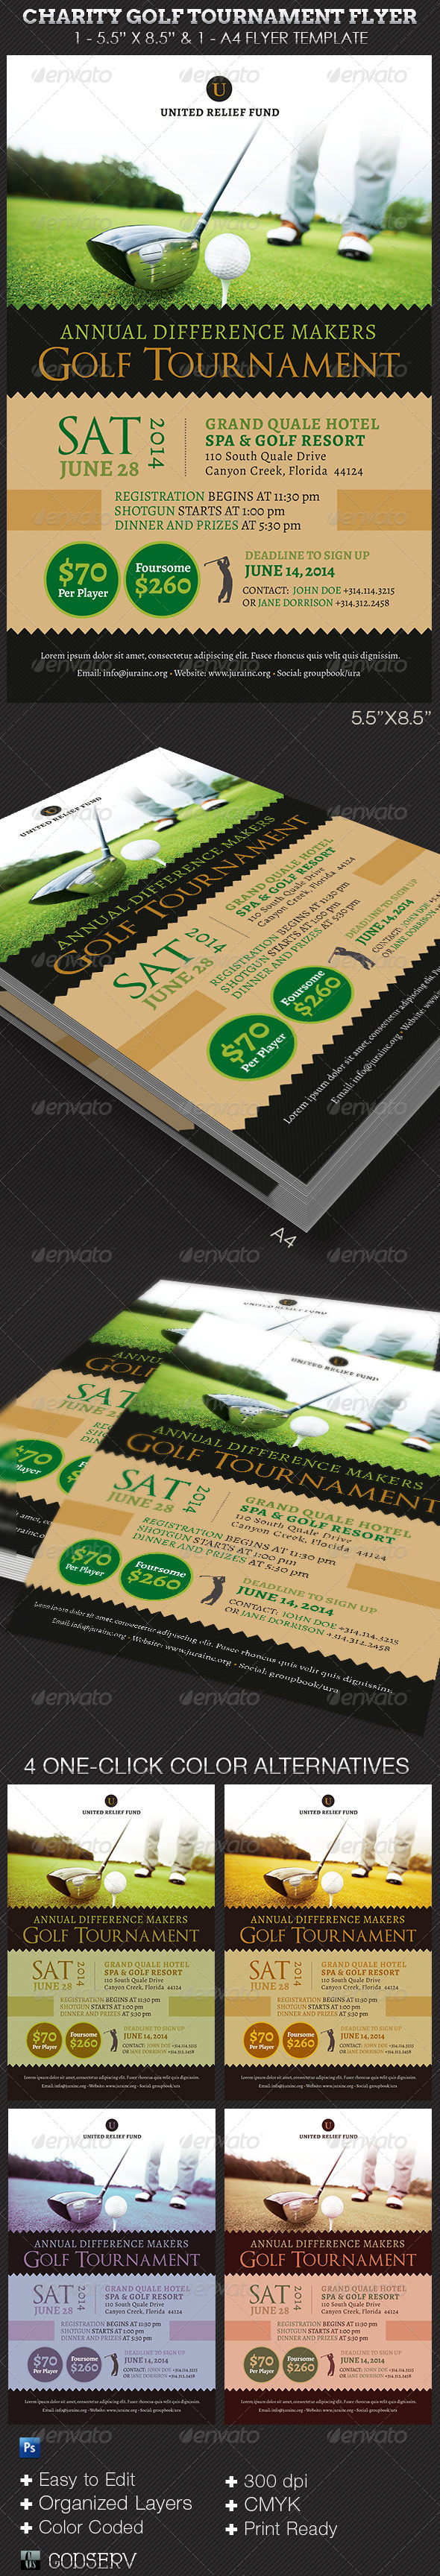 Charity Golf Tournament Flyer Template | GraphicMule